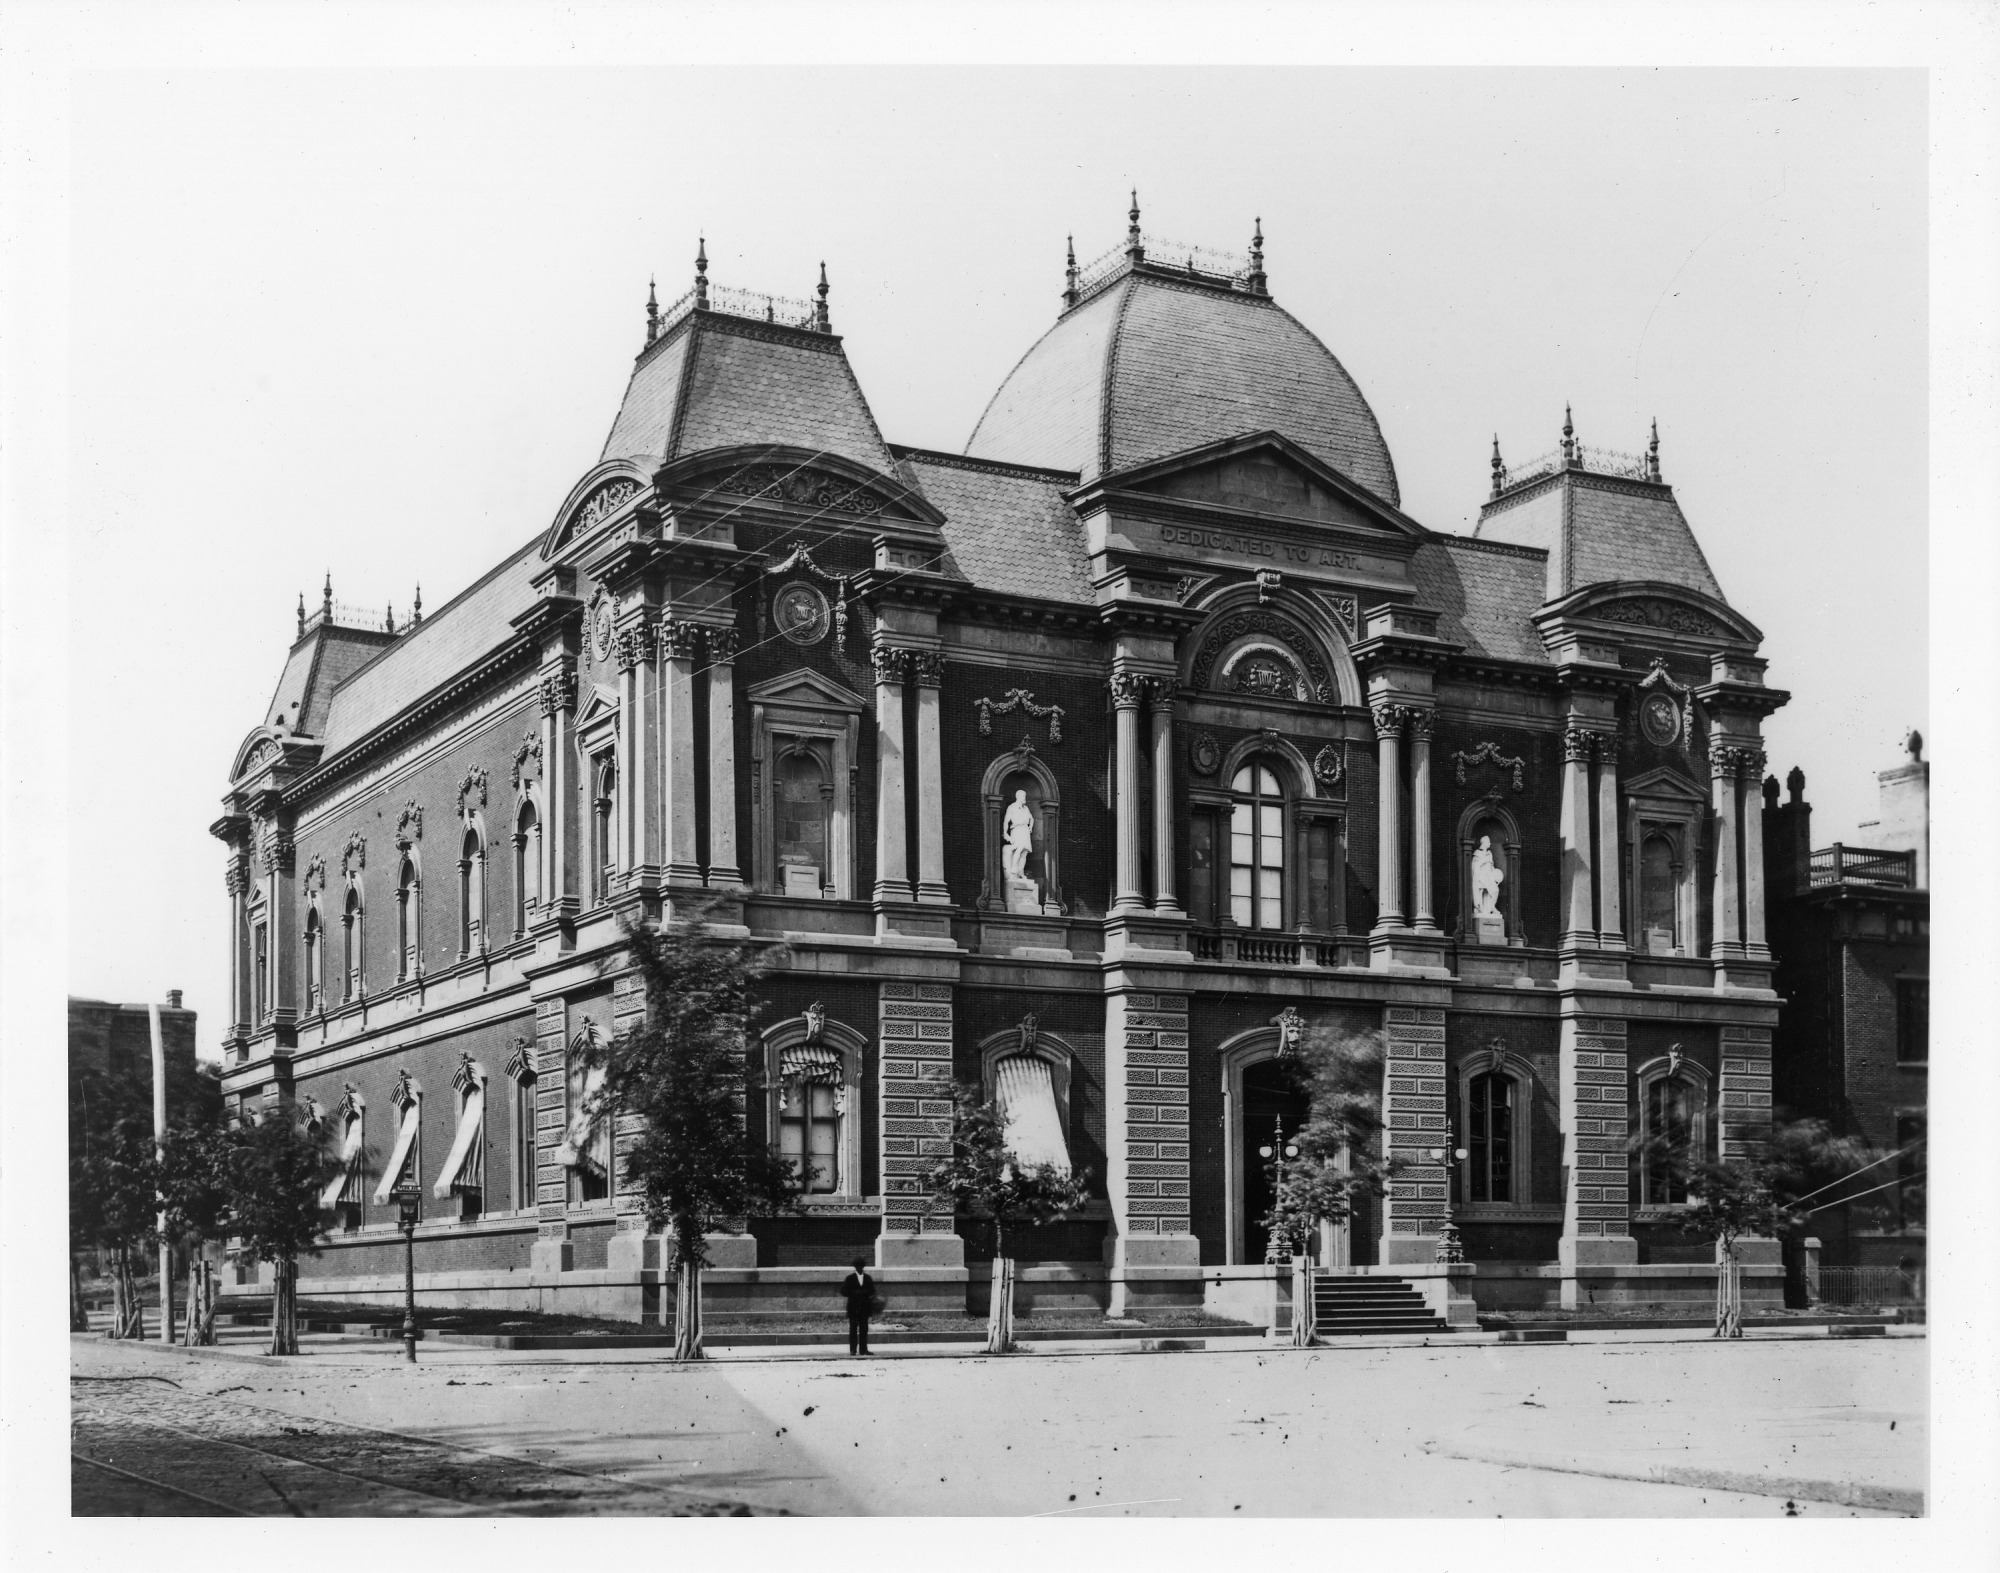 Photograph of Corcoran Gallery of Art, late nineteenth century. Smithsonian Institution Archives, negative number SIA2008-2351.